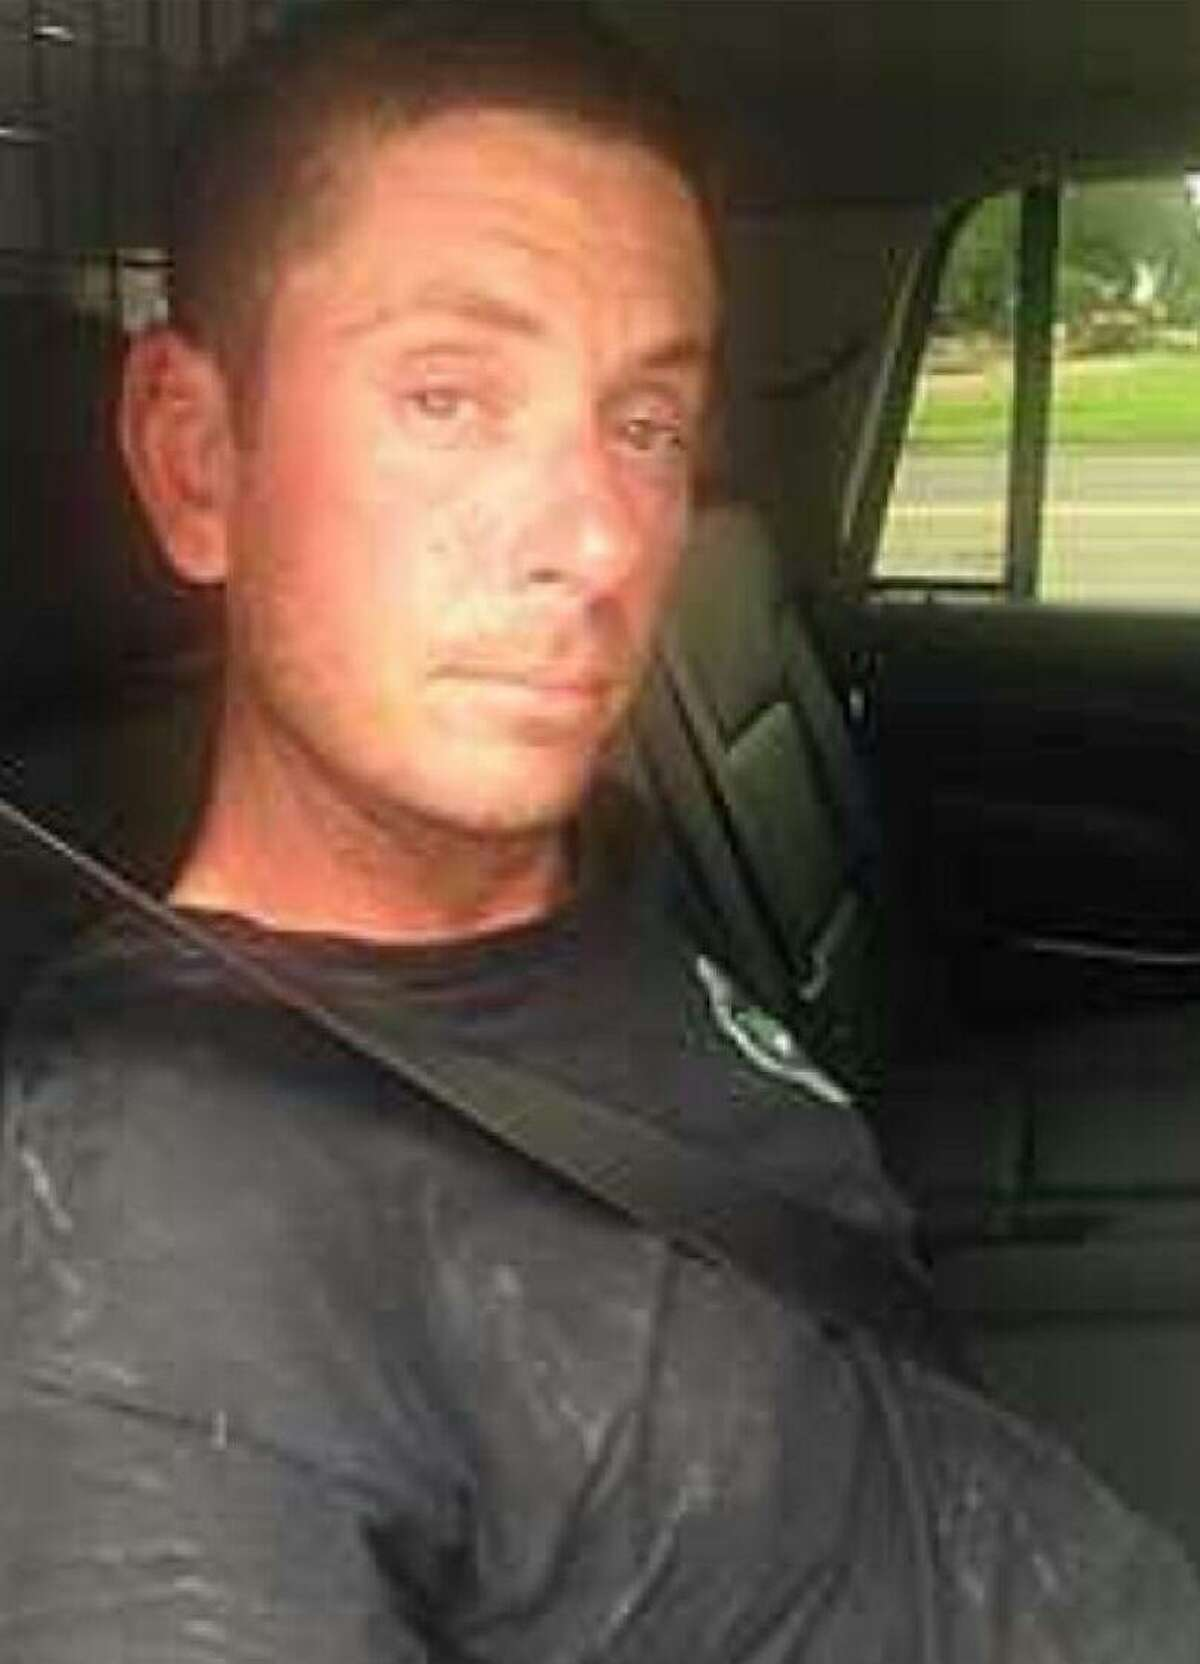 Liberty County authorities are searching for 38-year-old Phillip Henry Freeman after he escaped from jail on Tuesday, the sheriff's office said.